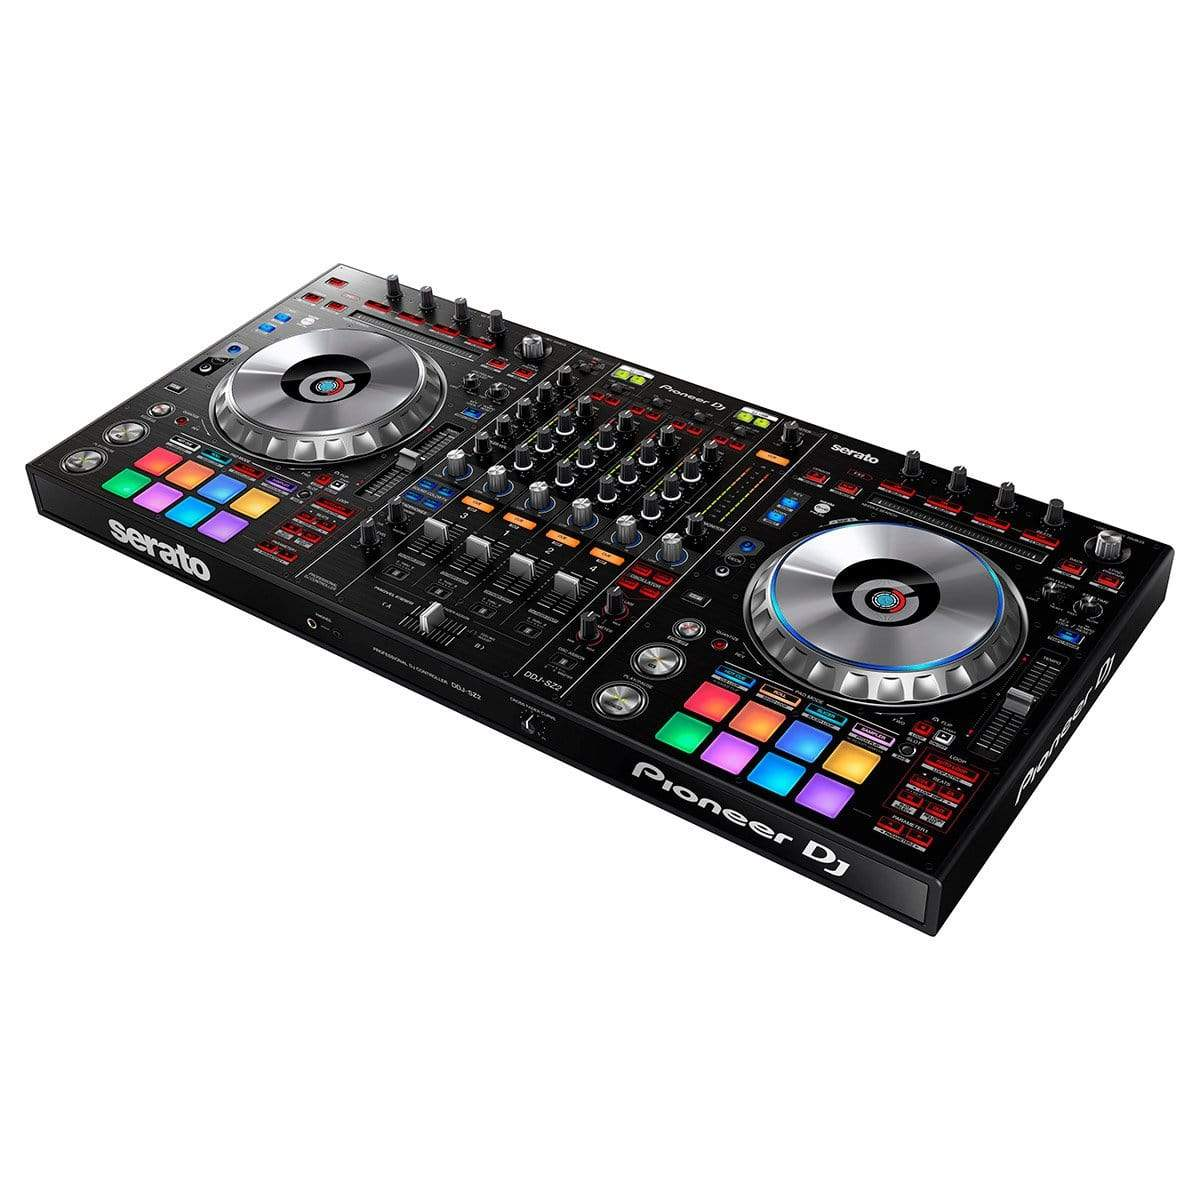 Pioneer DJ DDJ-SZ2 4-channel controller for Serato DJ